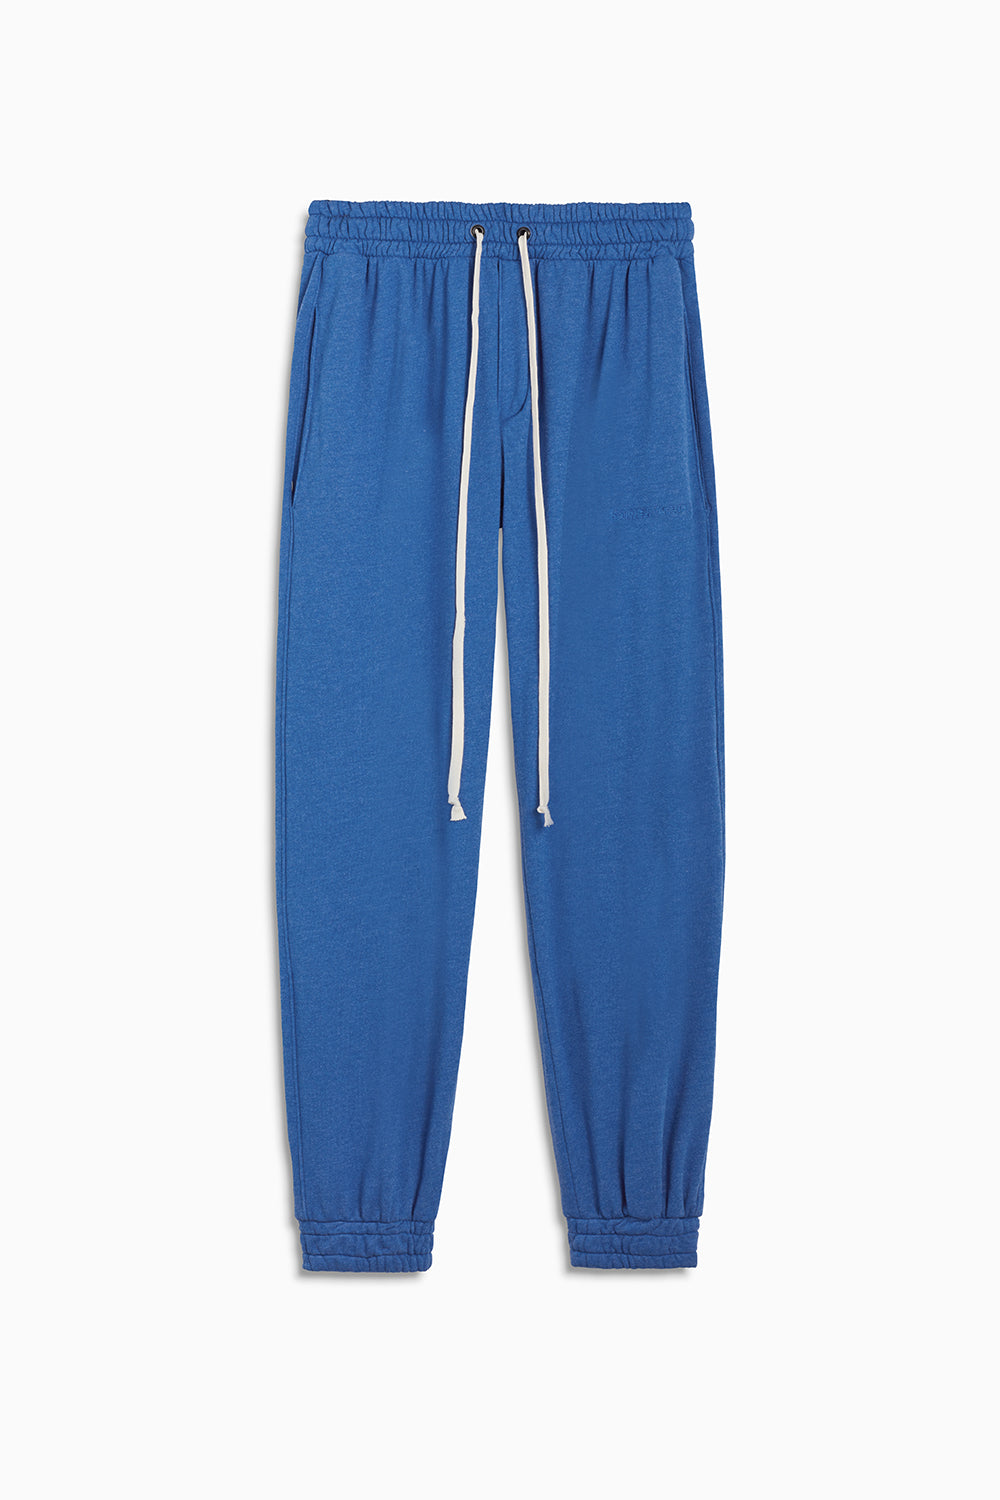 loop terry roaming sweatpants / vintage blue heather